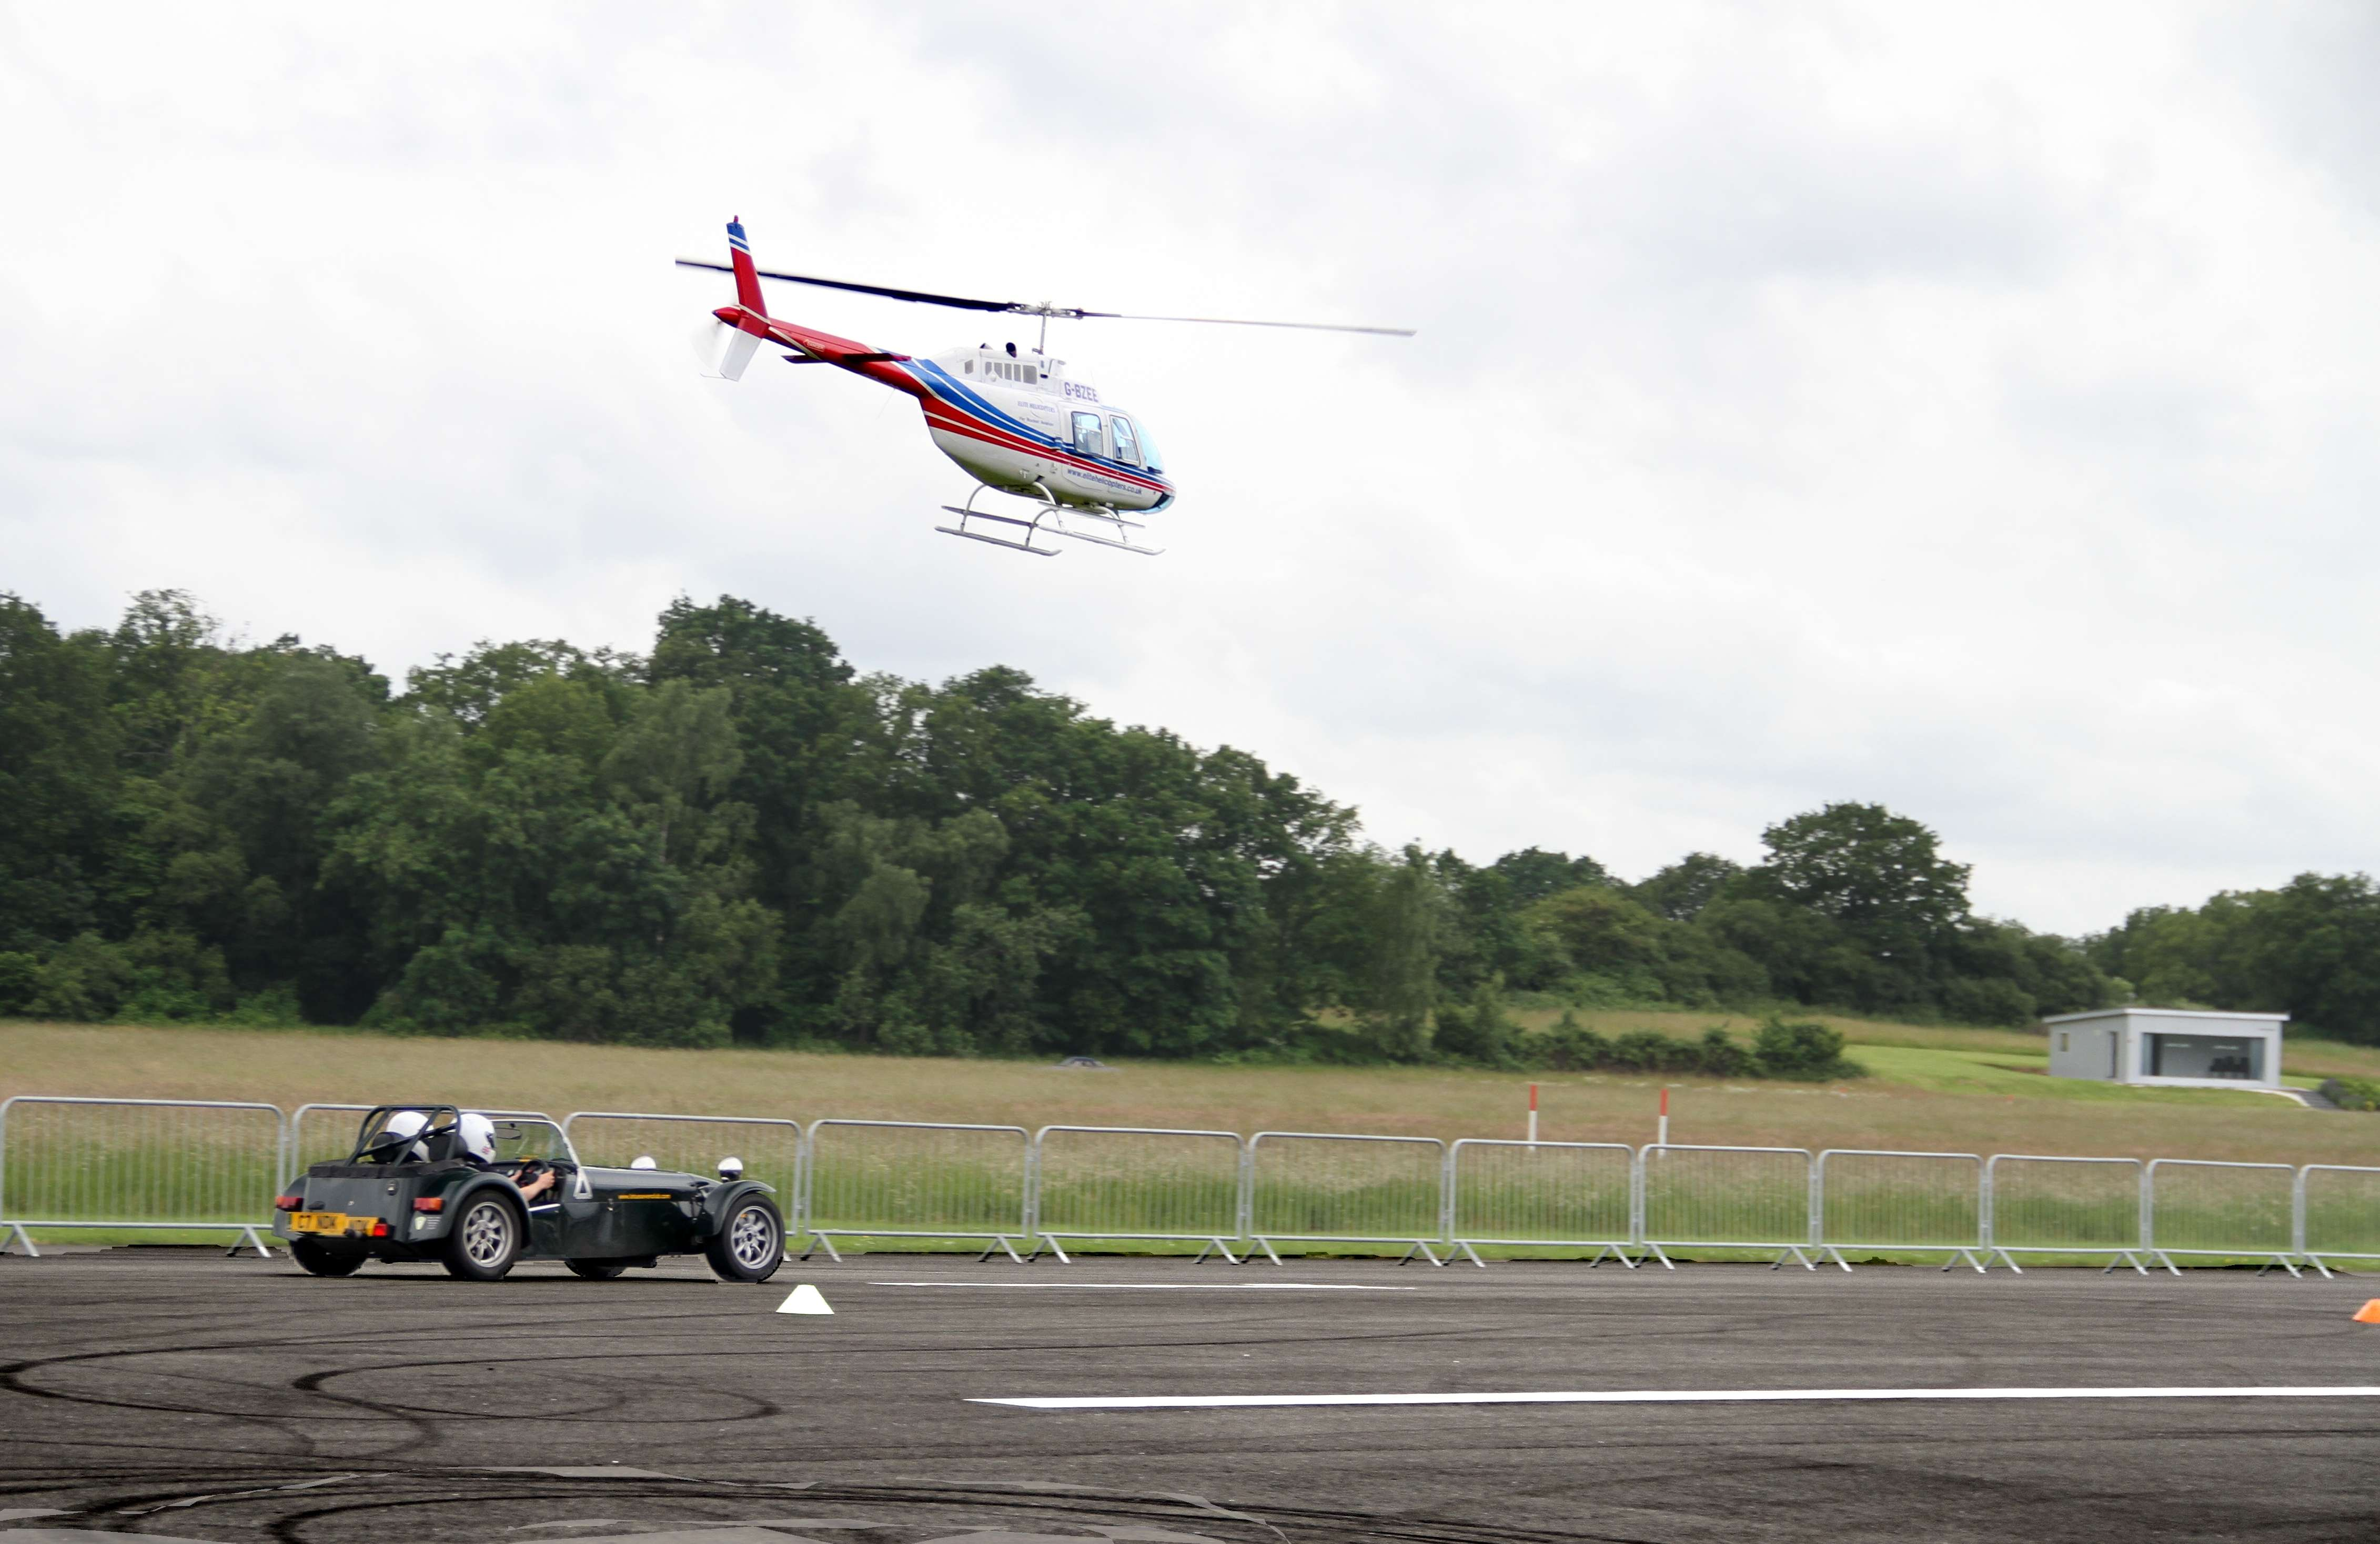 Caterham Helicopter